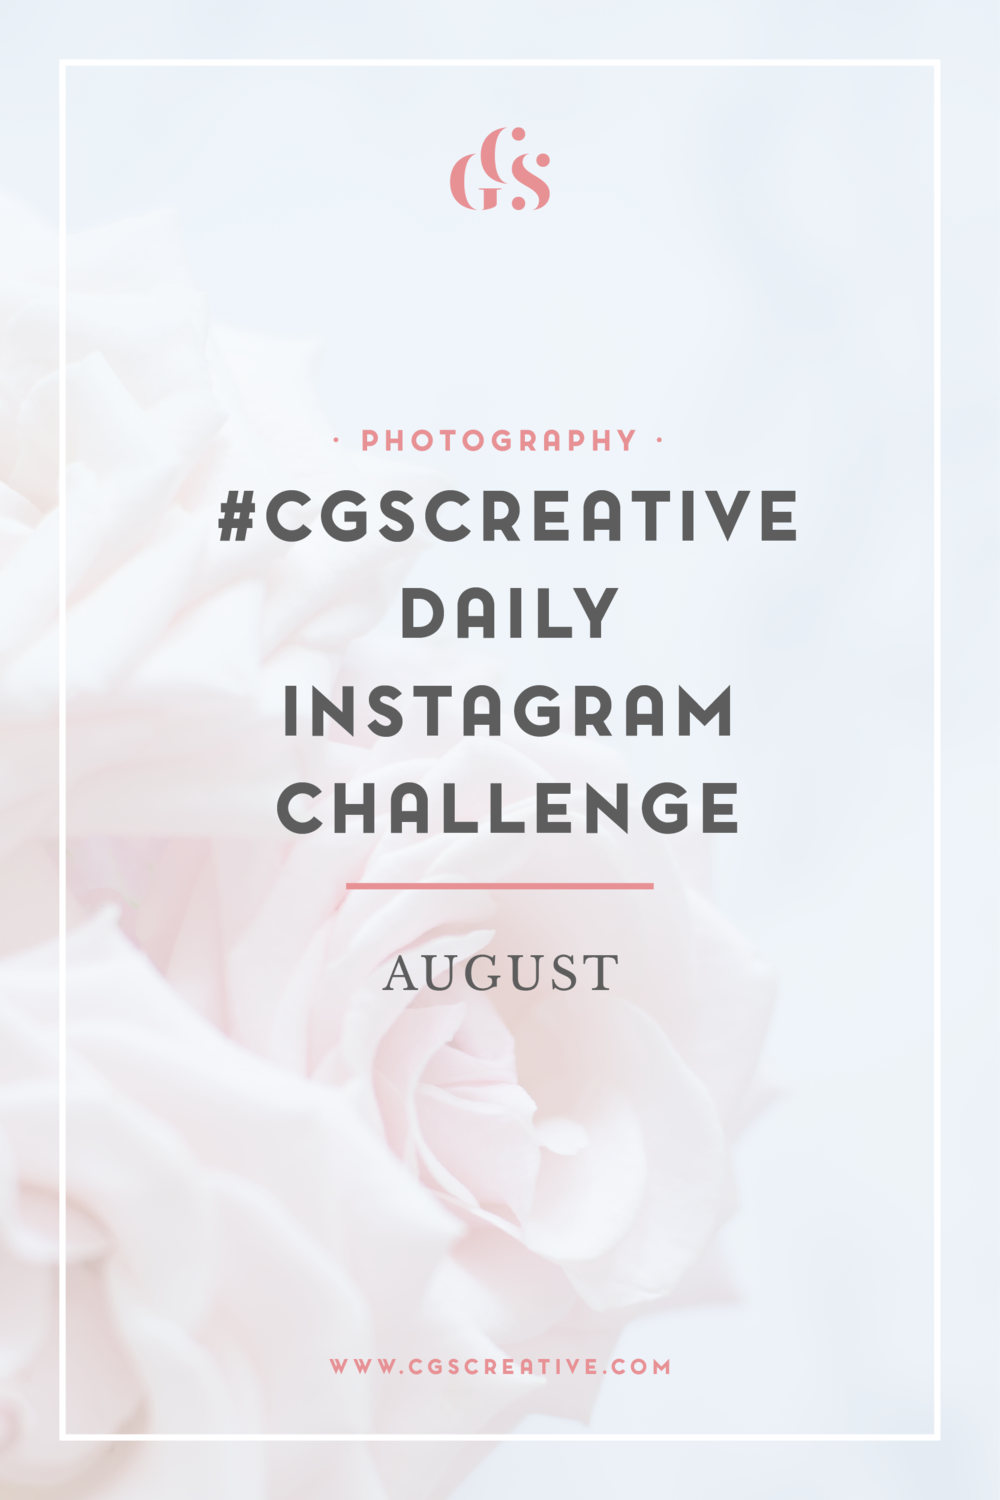 CGScreative Instagram Challenge How to Grow your Instagram Following